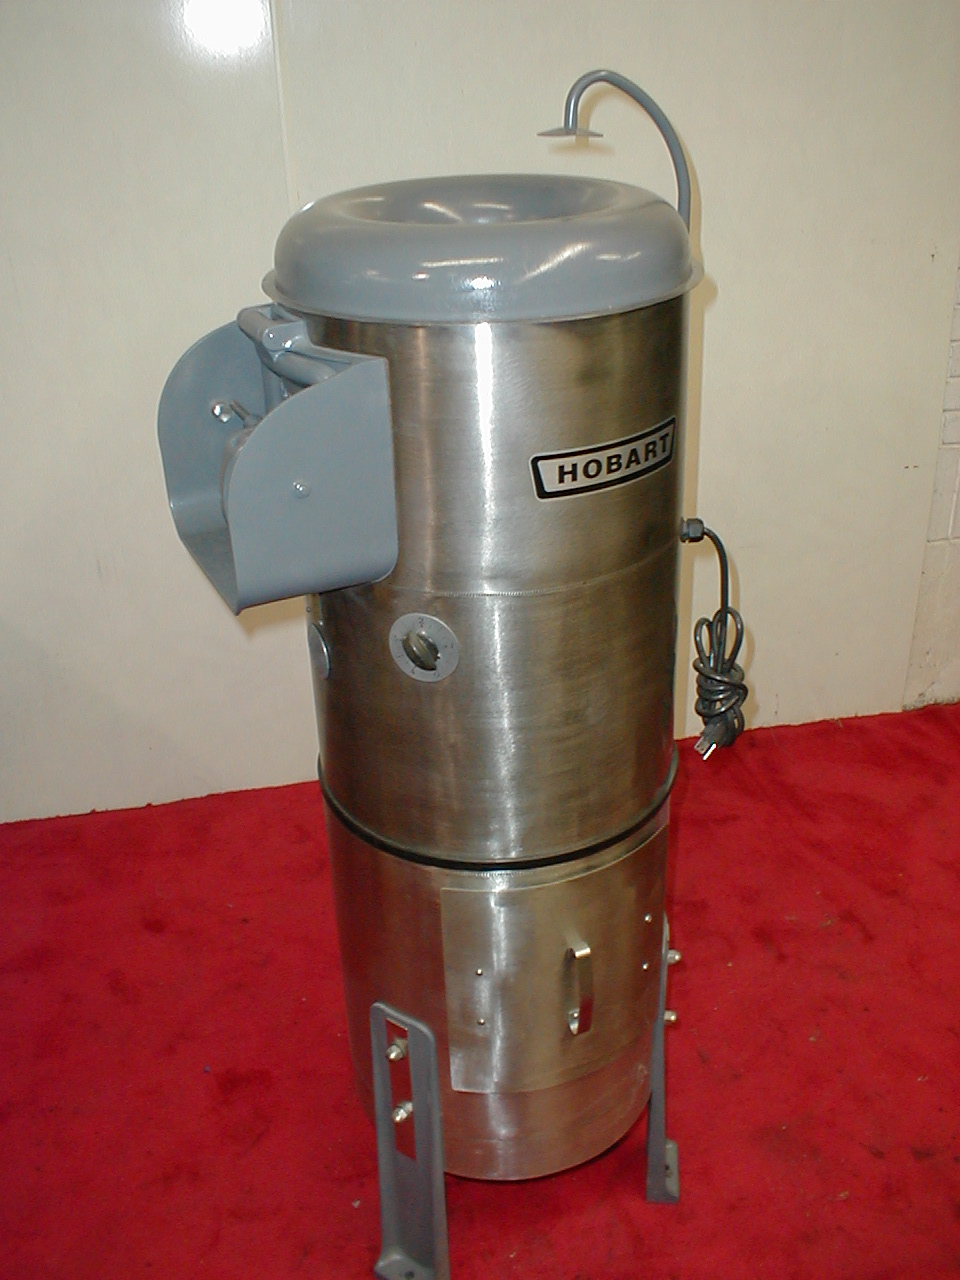 Refurbished Hobart slicers, food cutters, mixers, peelers. We service Cumberland County, South Jersey, Bridgeton 08302, Jomarc Commercial Food equipment Philadelphia repairs all Hobart Restaurant equipment